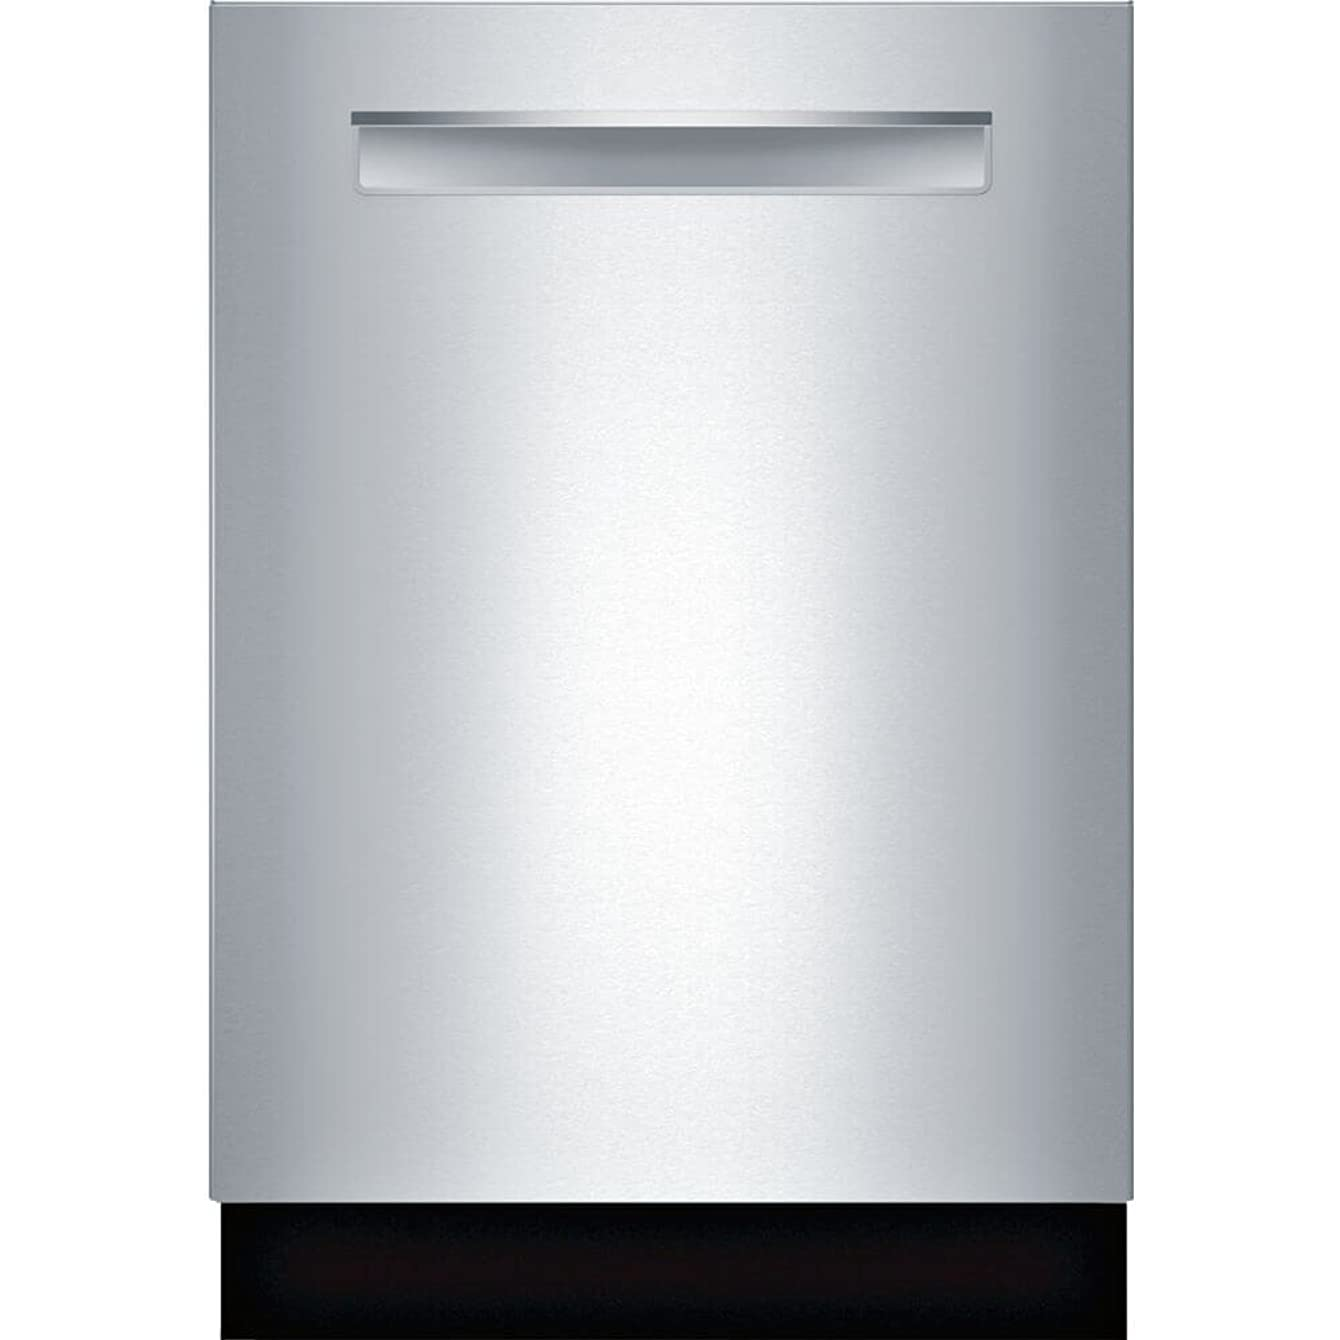 Bosch SHP865WD5N 500 Series Built In Fully Integrated Dishwasher with 5 Wash Cycles, in Stainless Steel desxvnqbiivse22